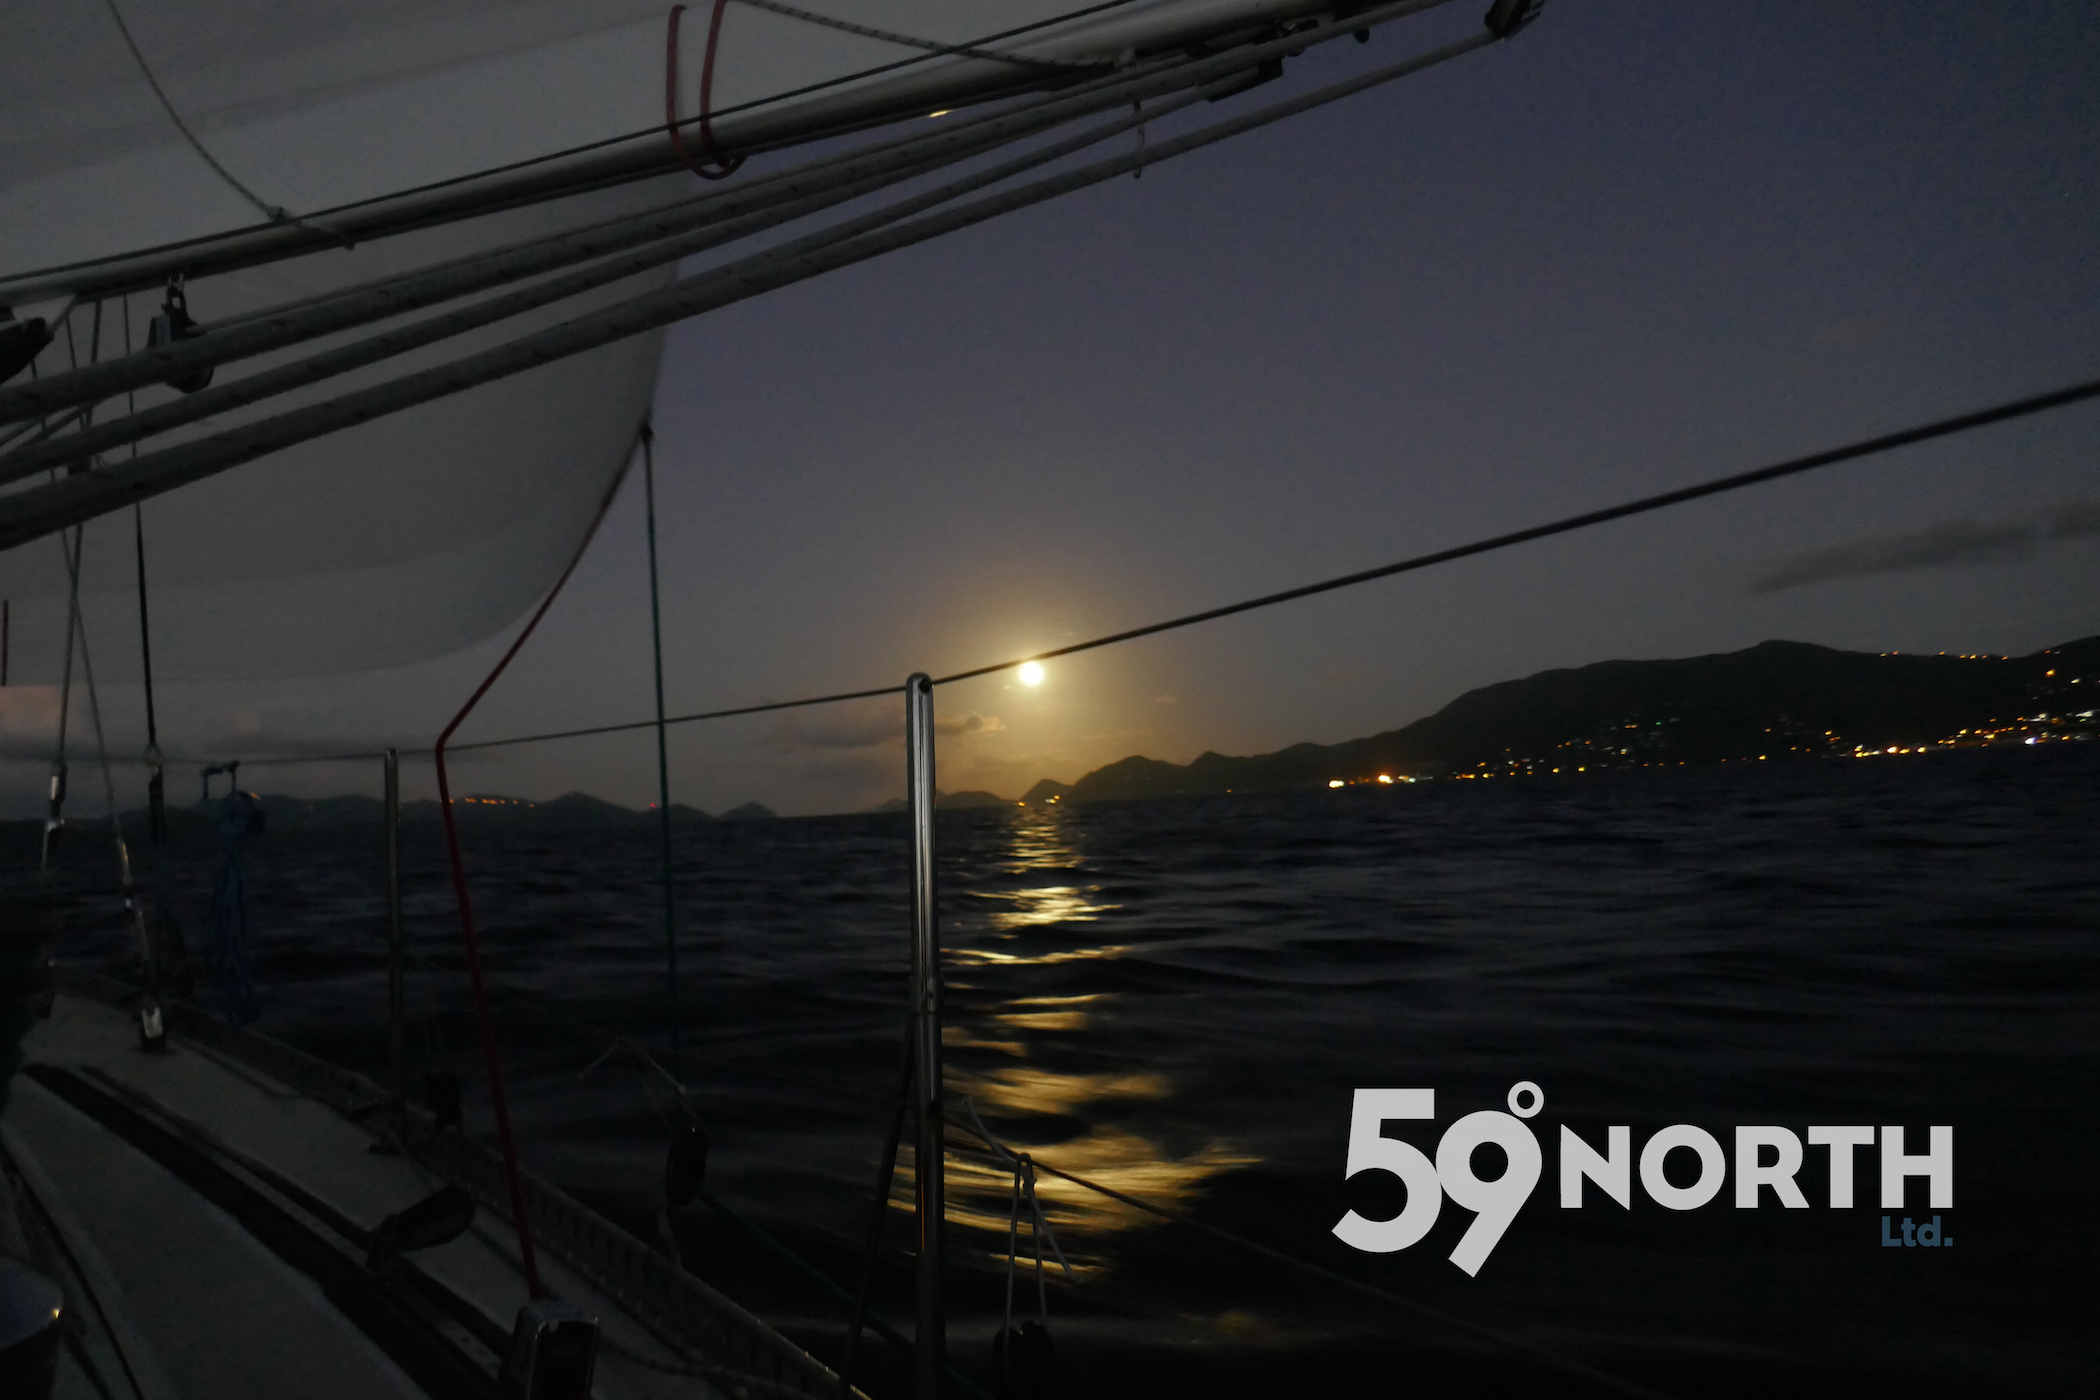 The moon was setting over Tortola as we sailed up the Sir Frances Drake Channel